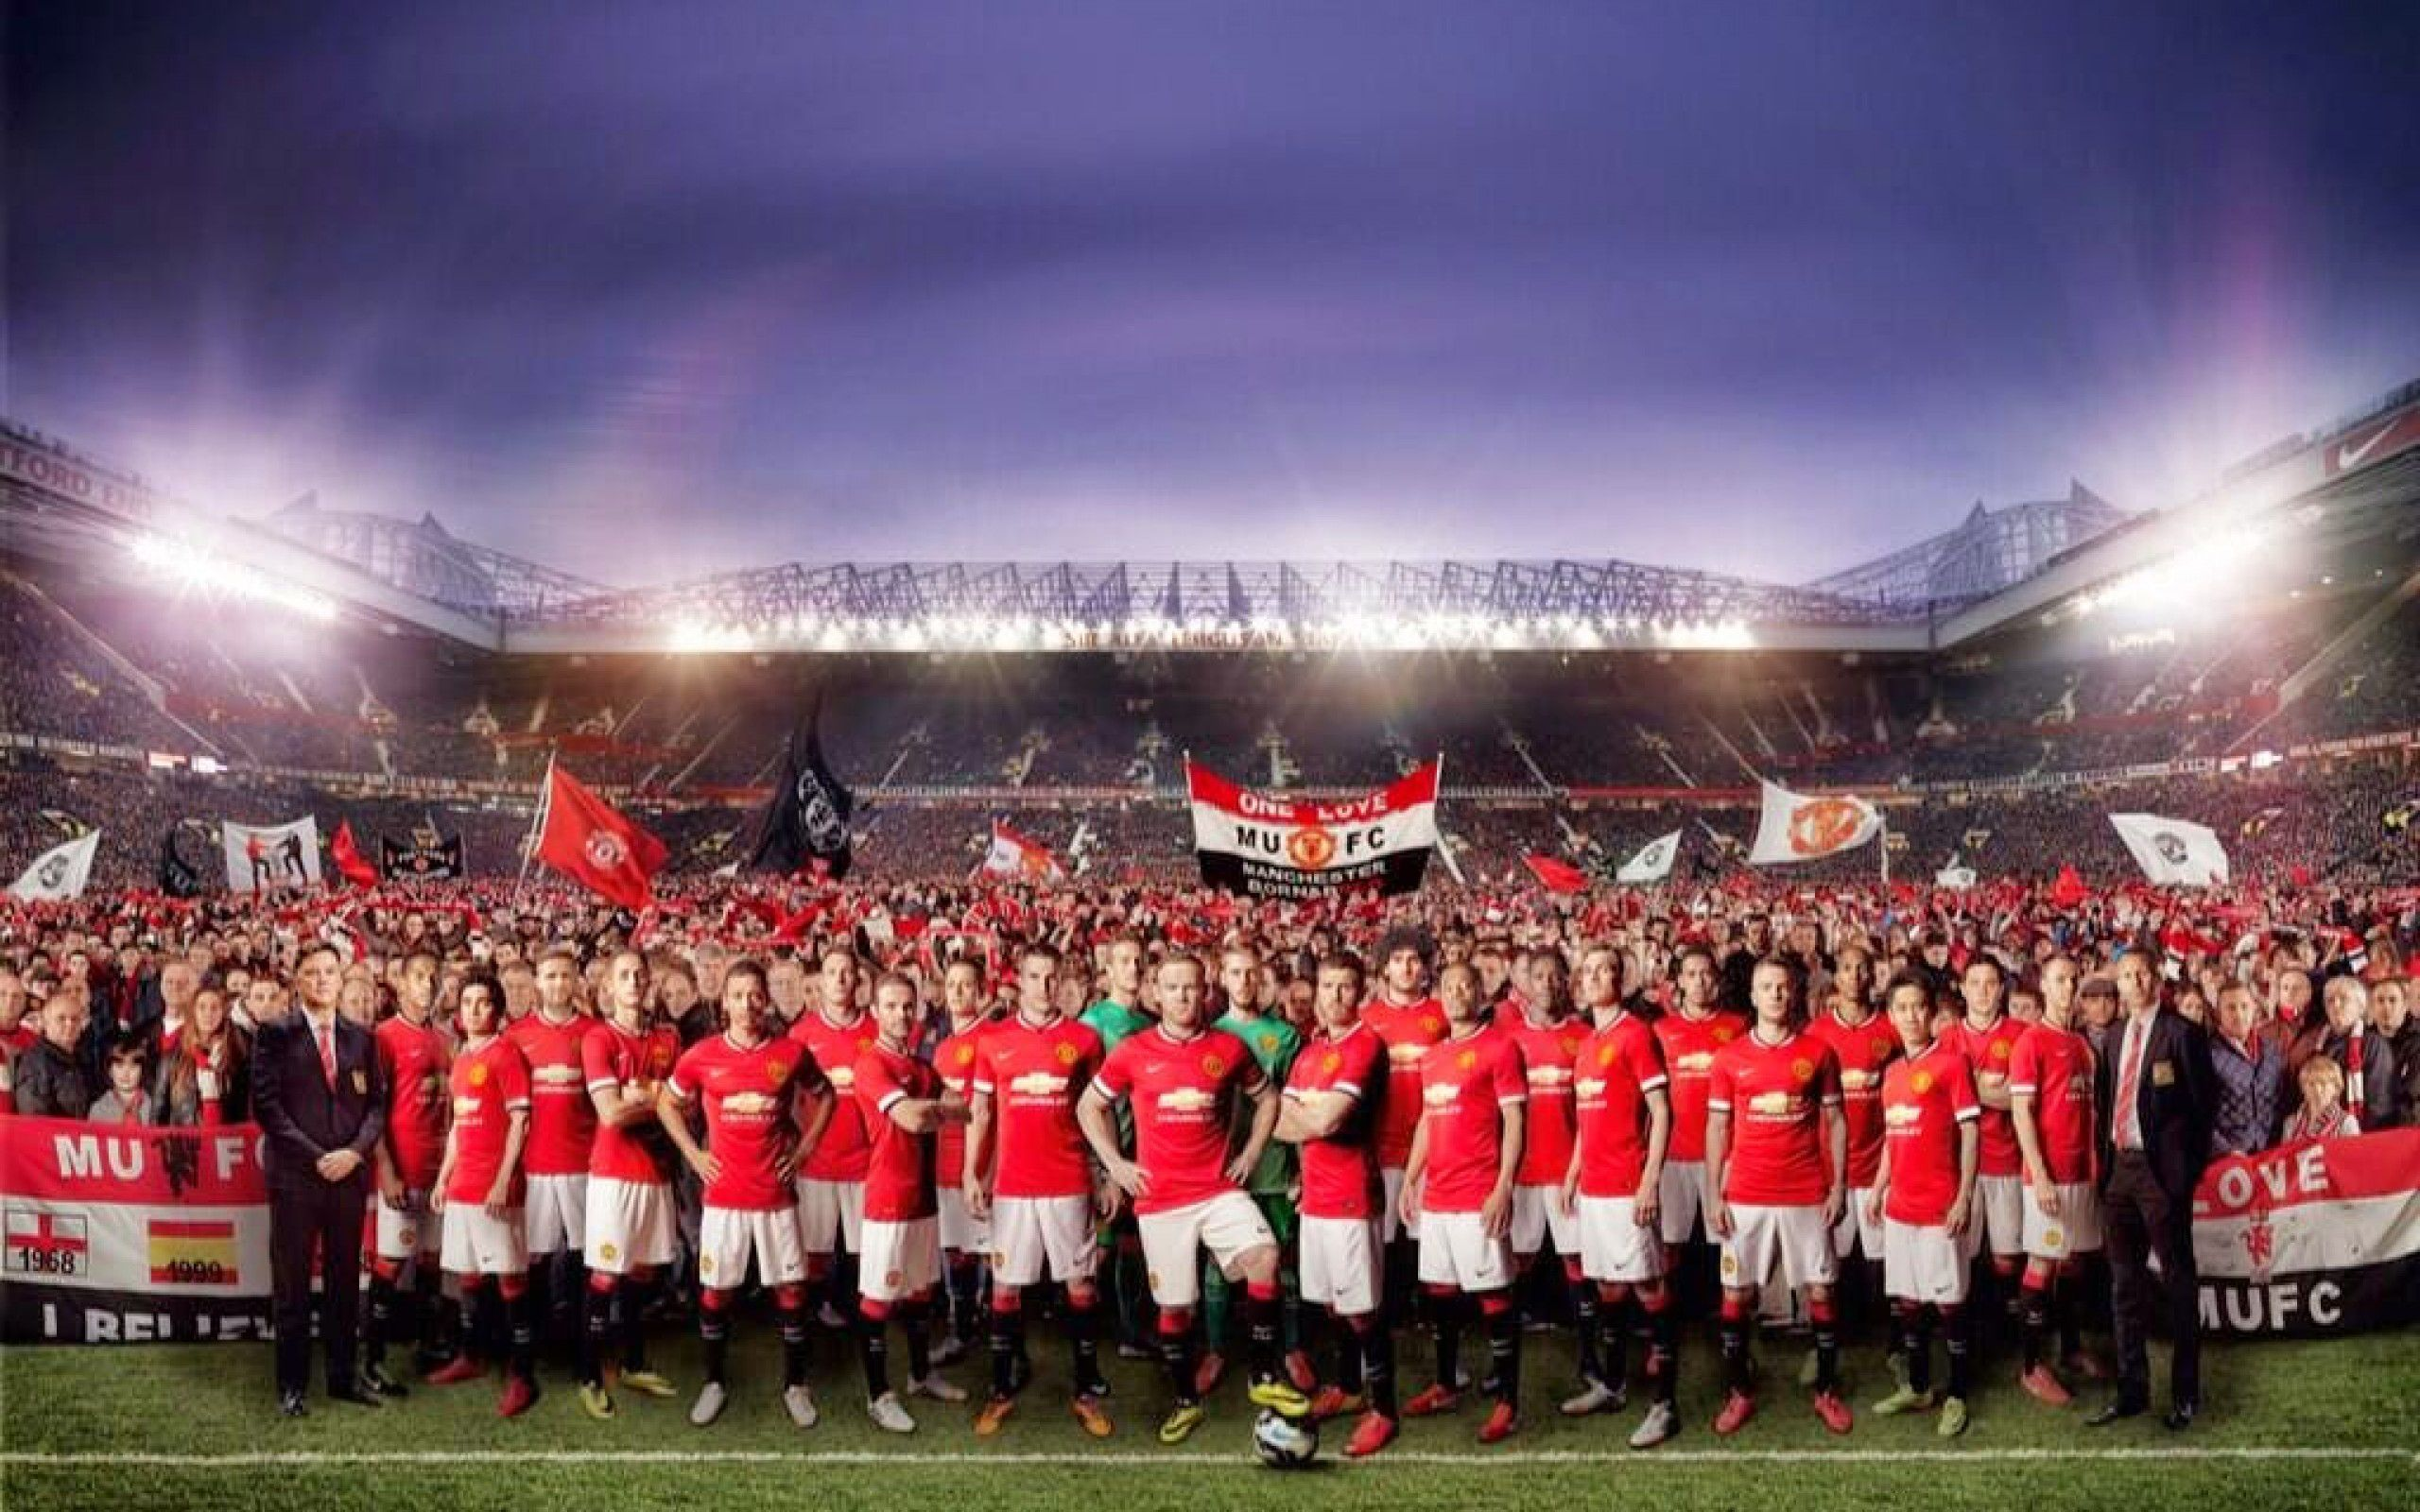 Manchester United Hd Wallpapers 2016 Sports Wallpapers